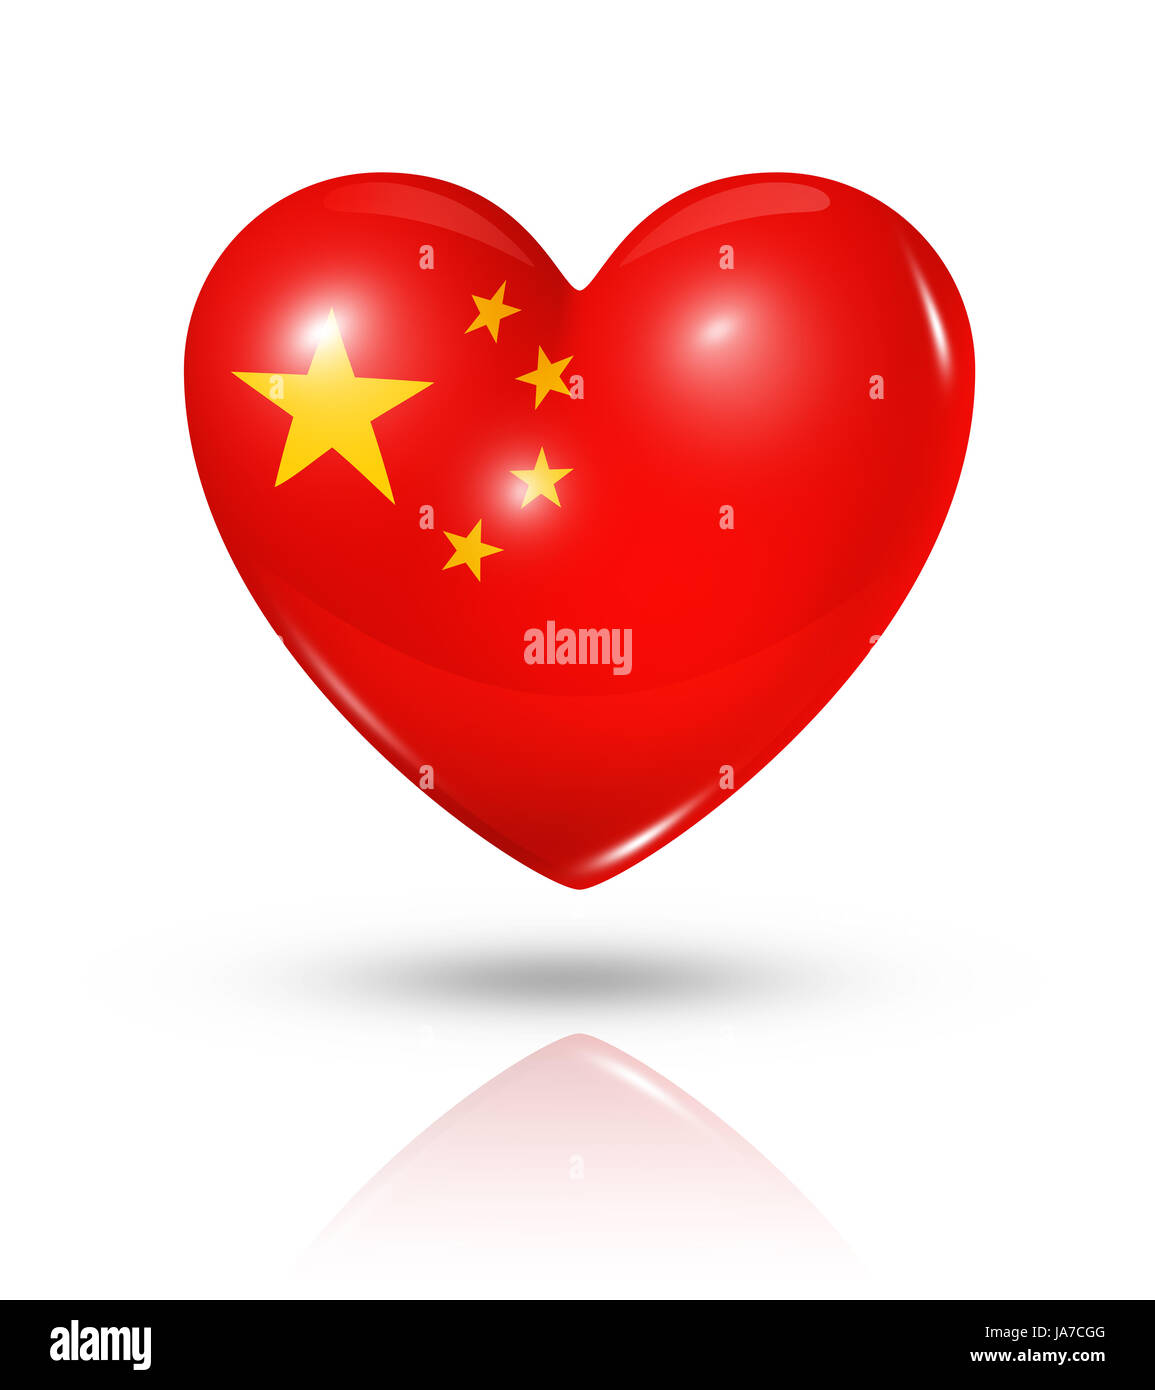 Flag china chinese love in love fell in love heart flag china chinese love in love fell in love heart pictogram symbol buycottarizona